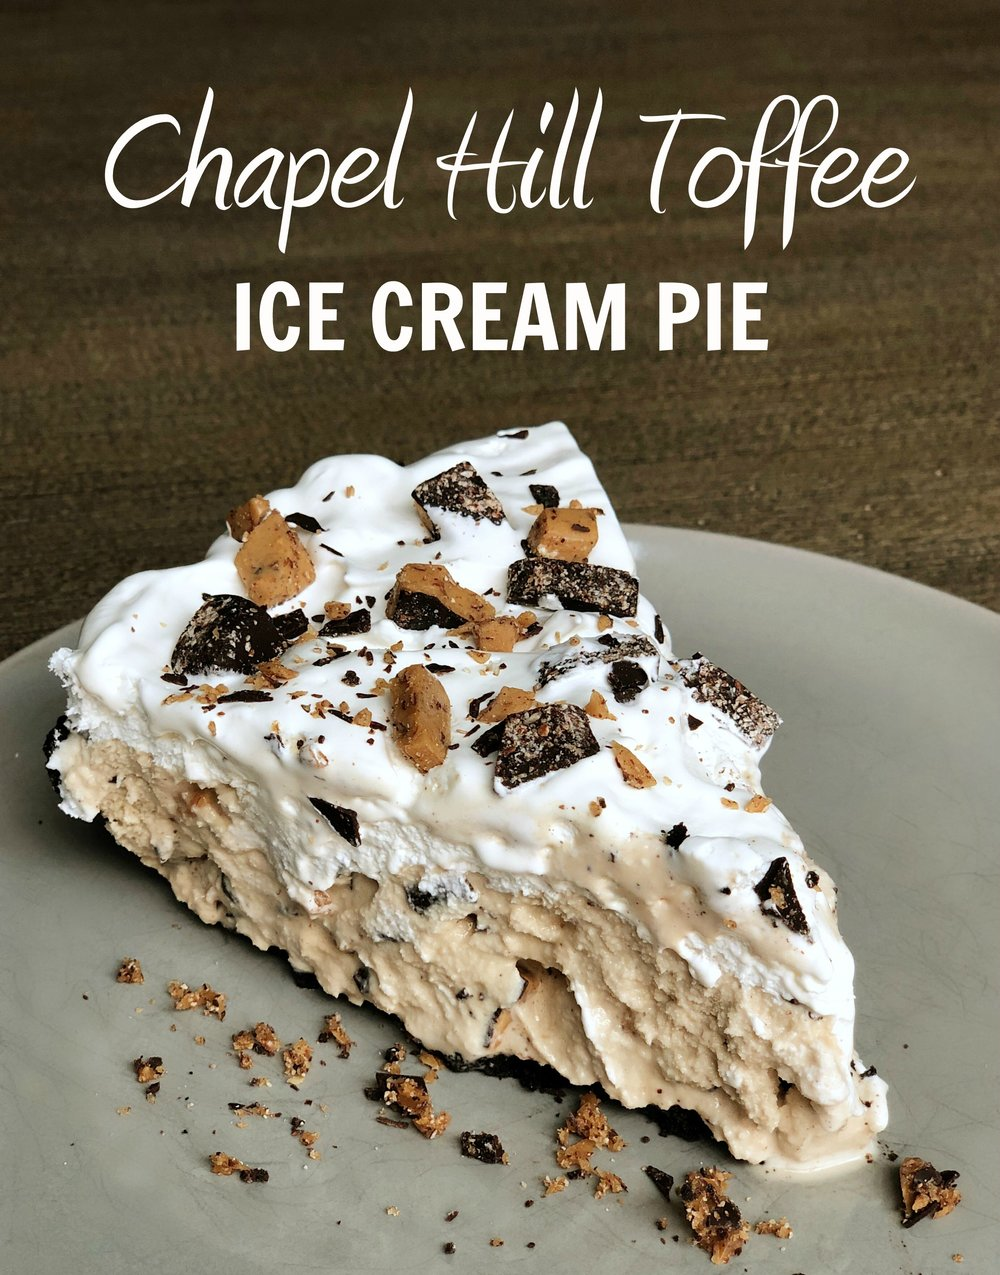 Ice Cream Pie 09 with text.jpg